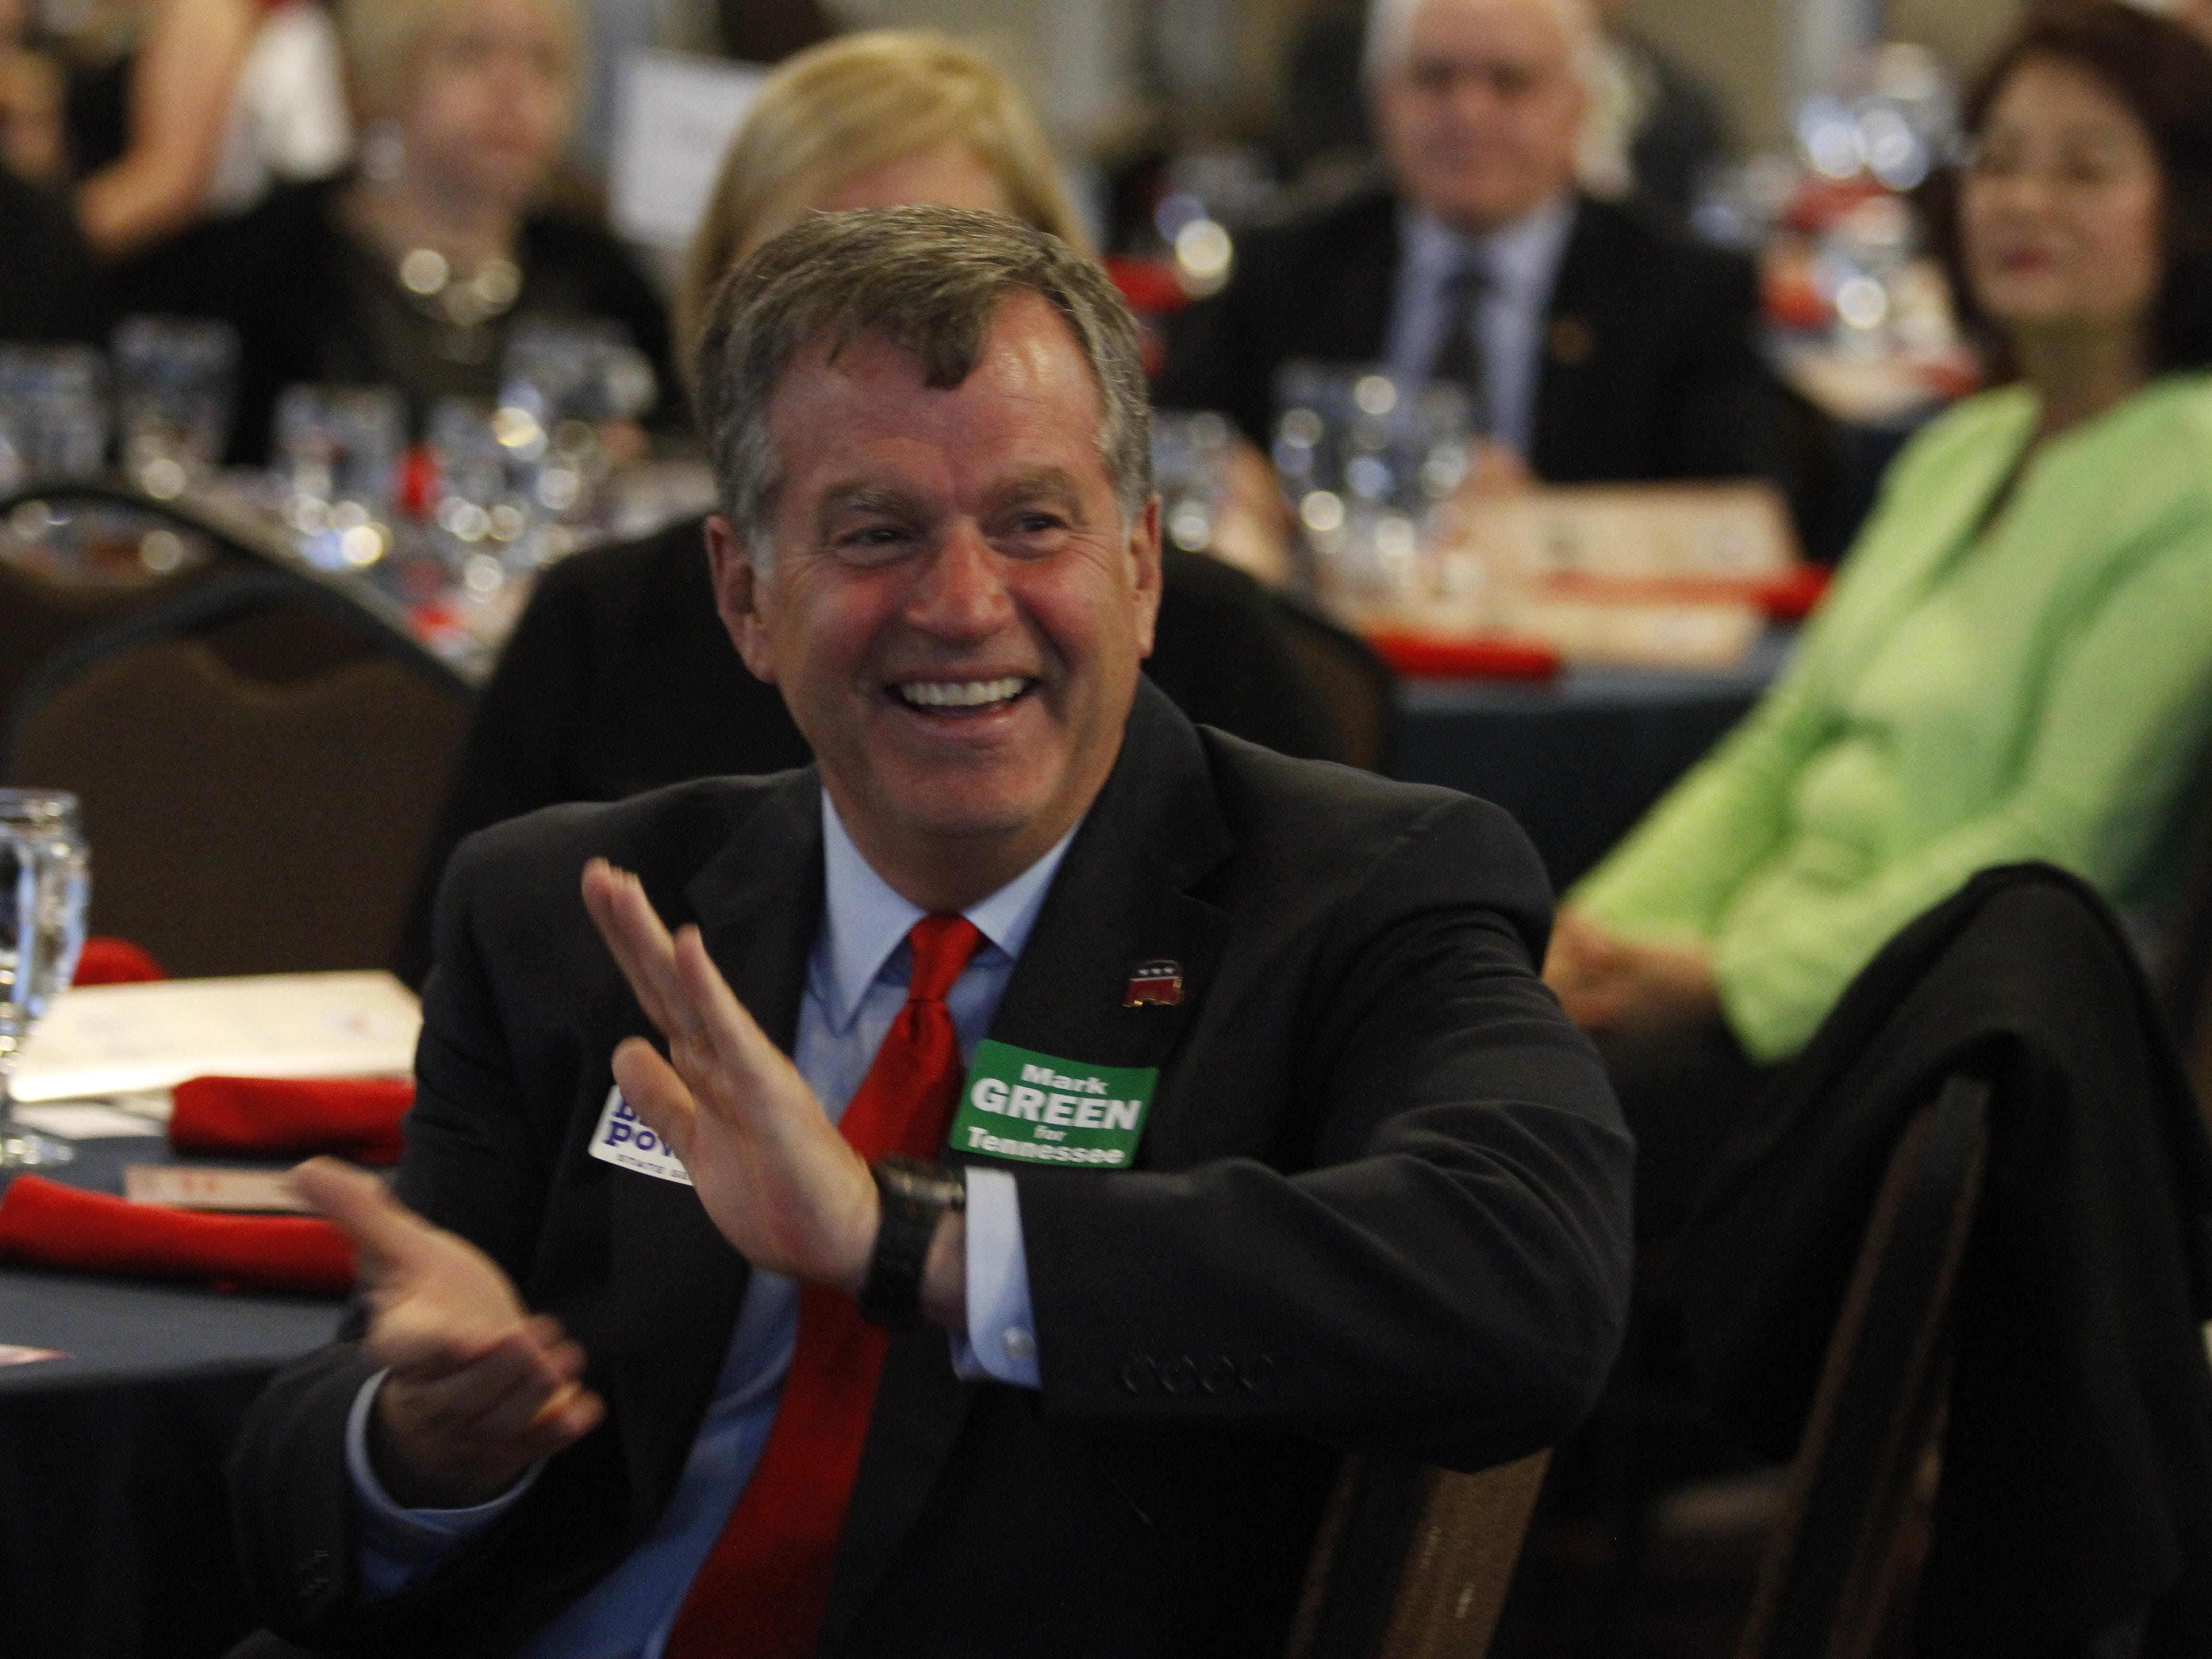 Bill Powers, Republican candidate for state Senate District 22, at the Montgomery County GOP Lincoln Reagan Dinner at Wilma Rudolph Event Center Friday, 22, 2019.